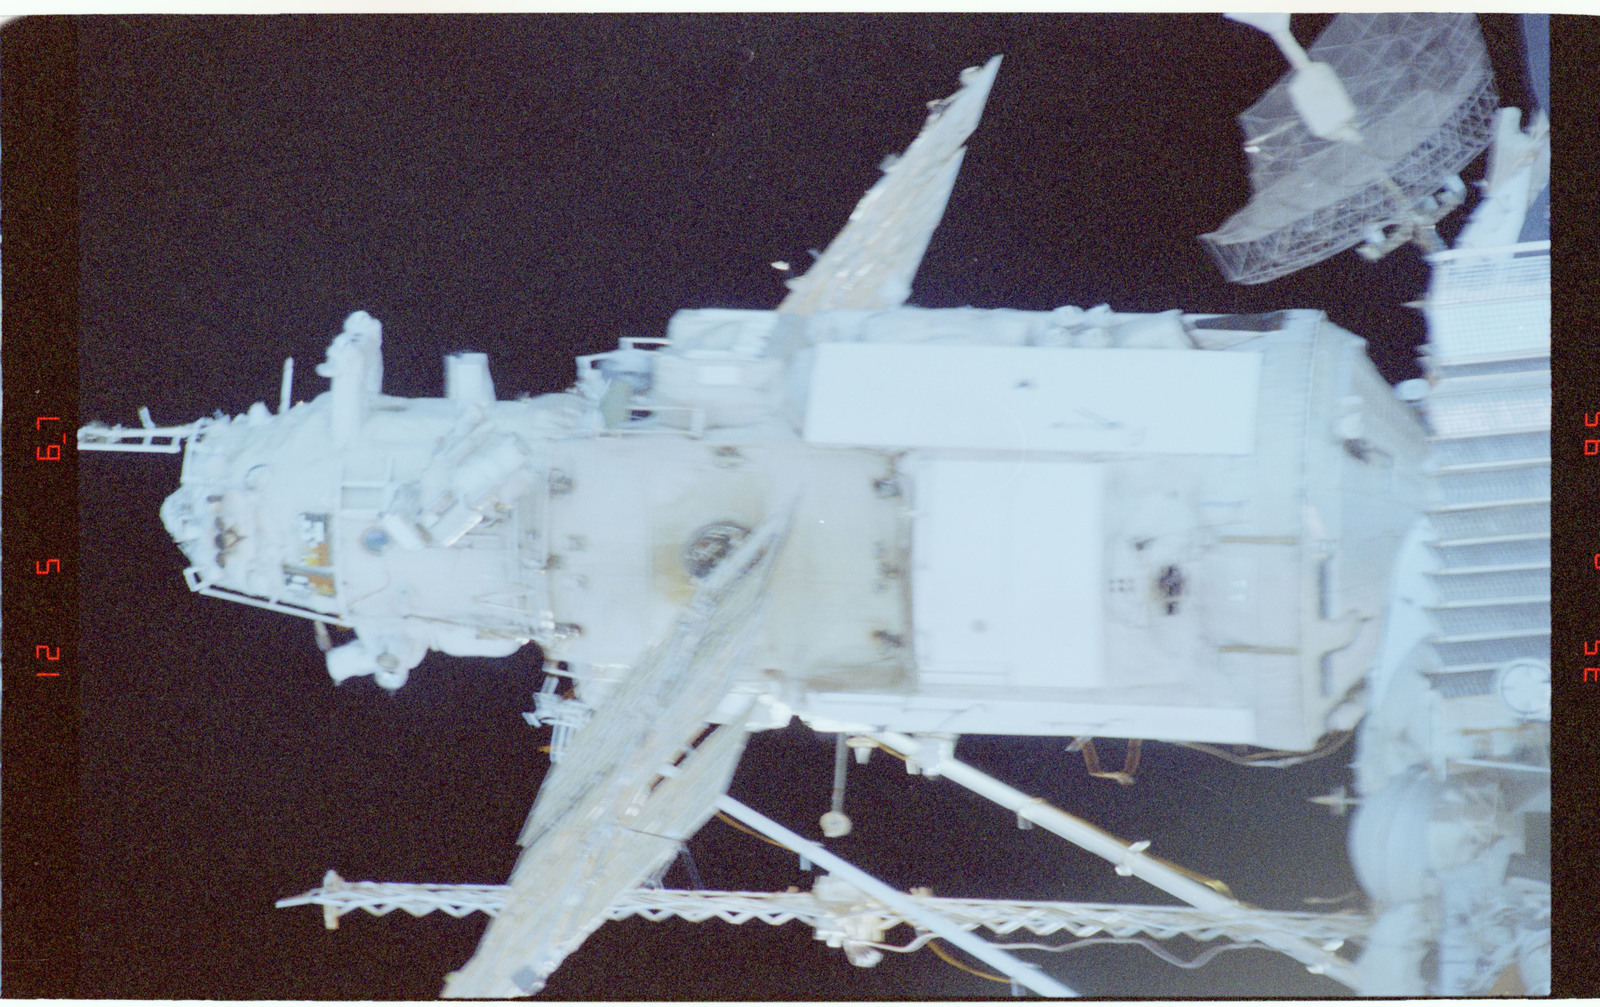 STS086-394-034 - STS-086 - Survey views of the Mir space station